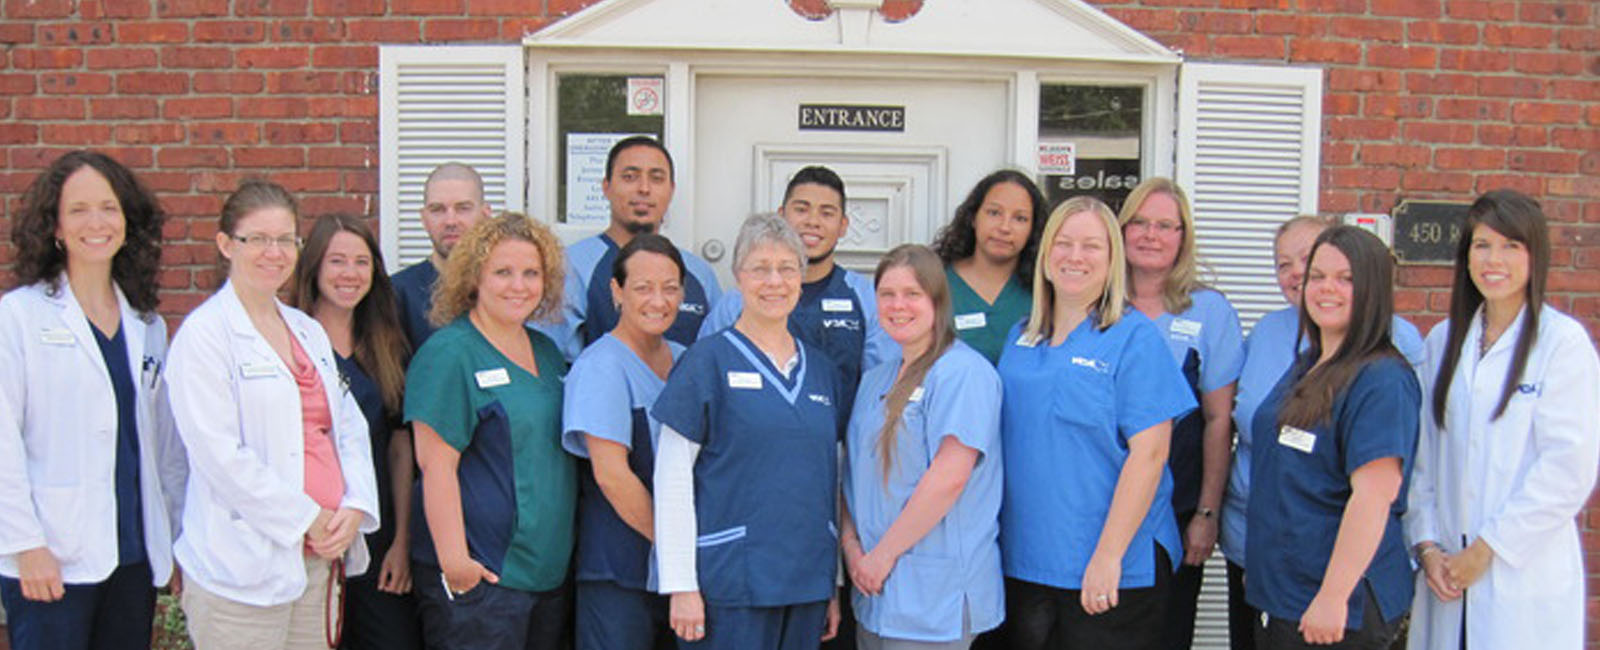 Homepage Team Picture of VCA Iselin Animal Hospital